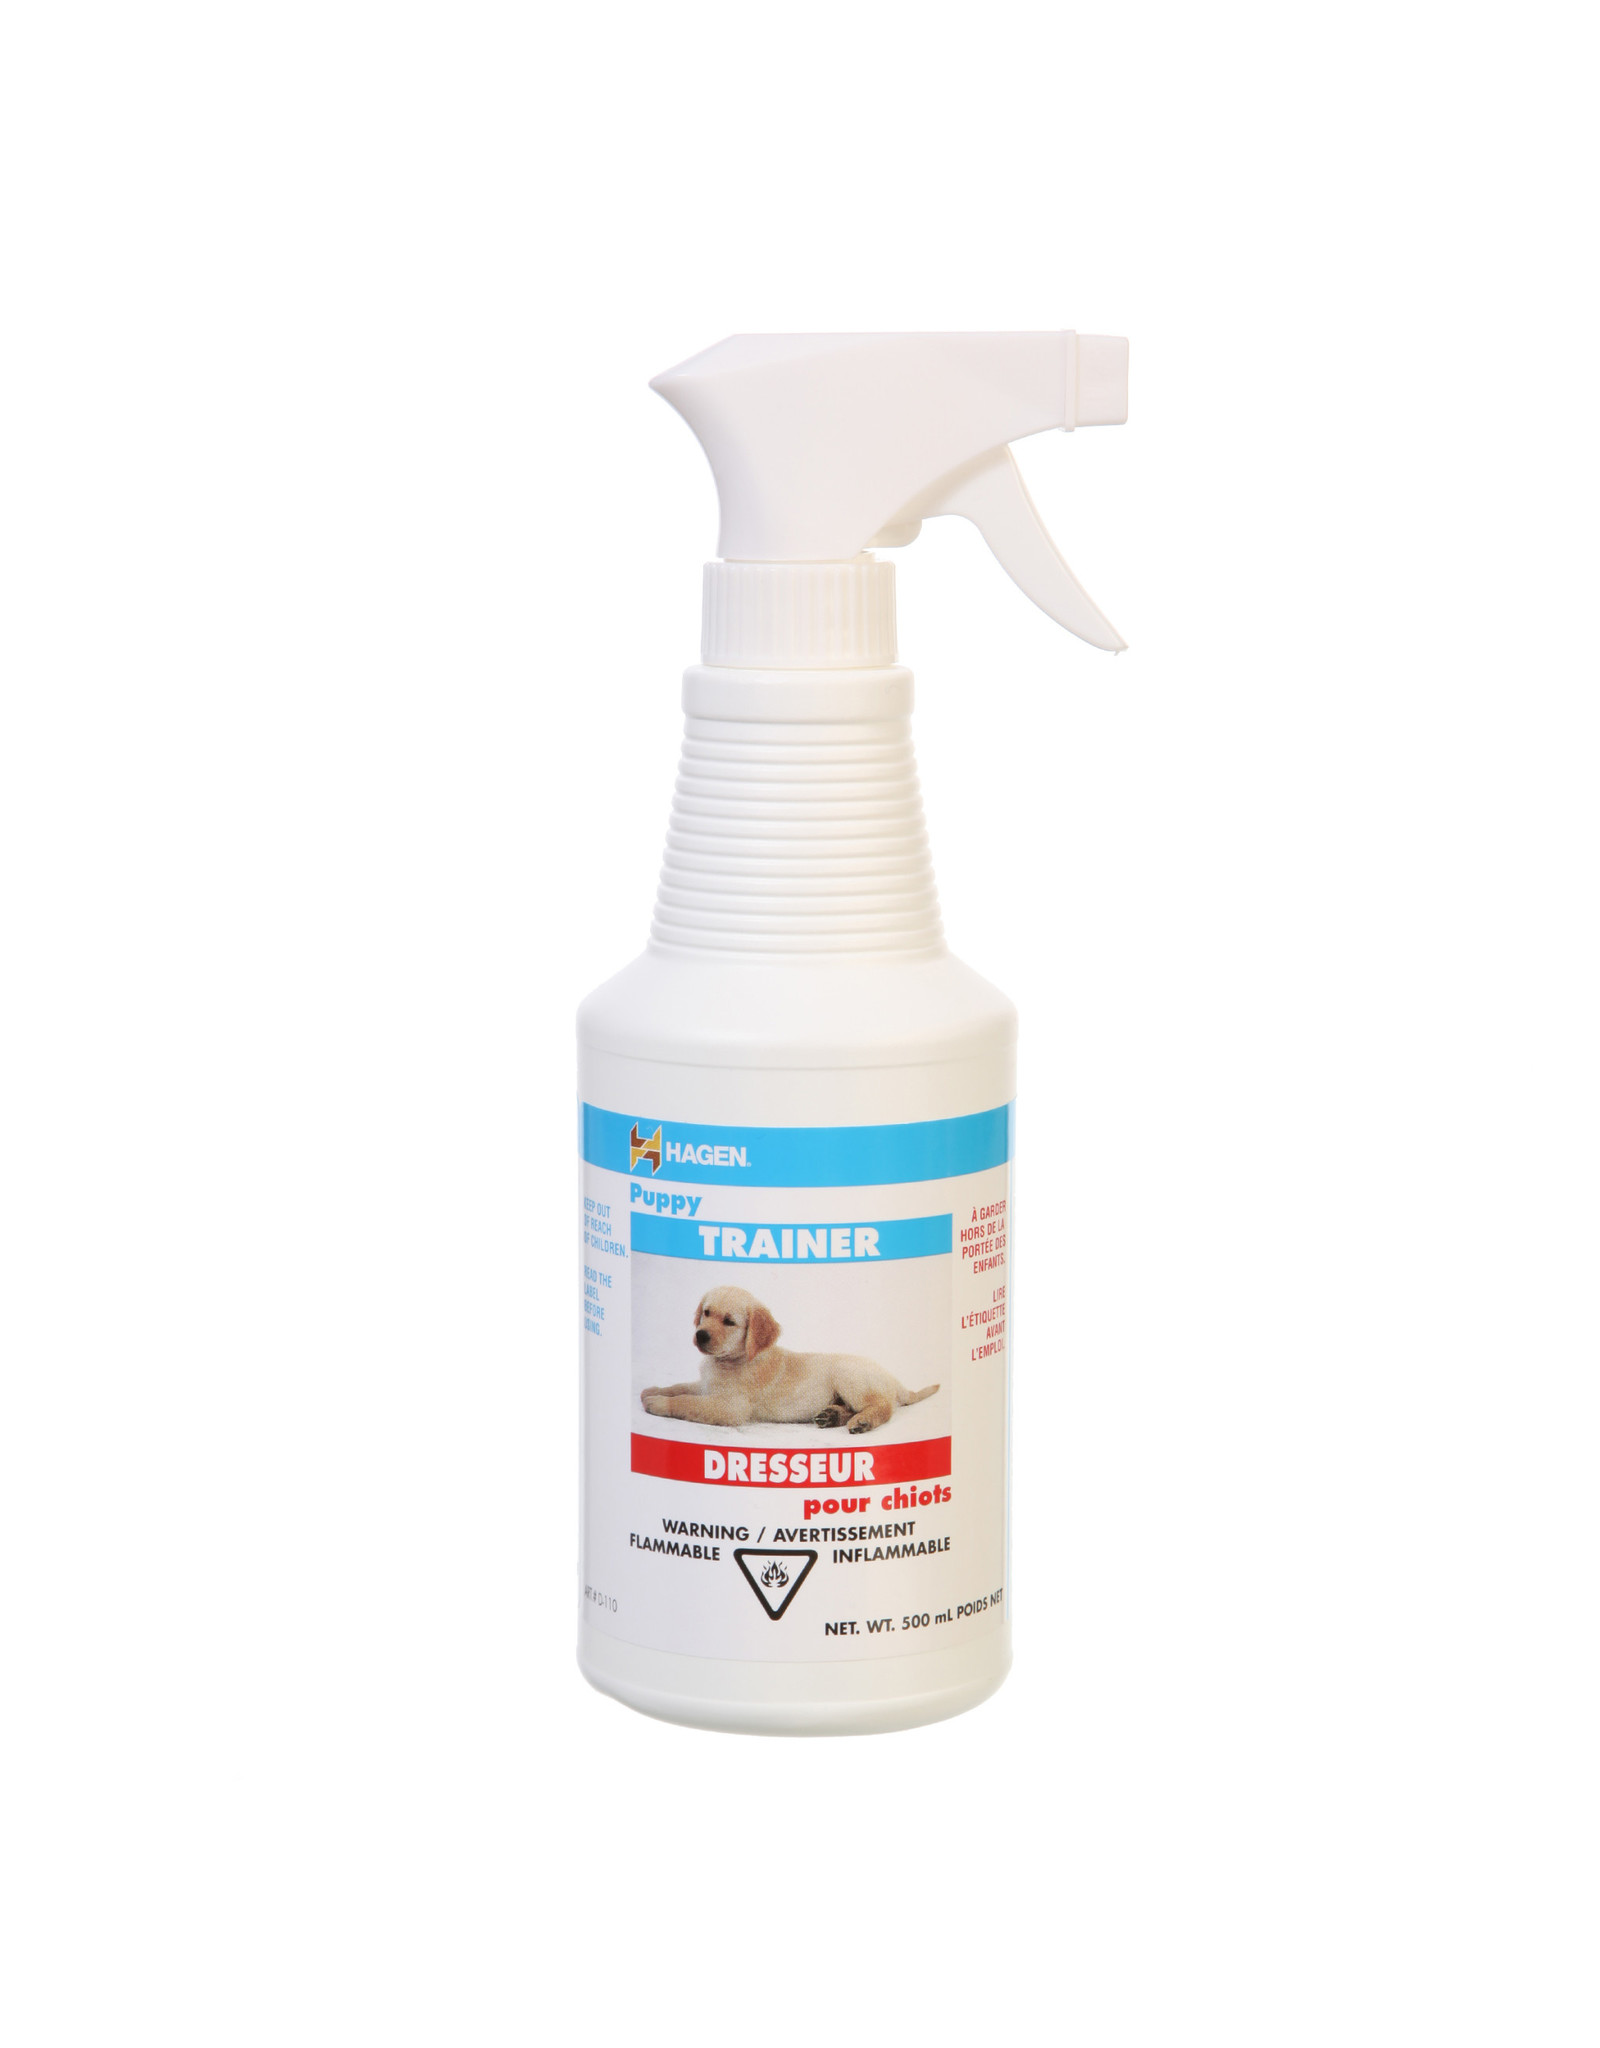 HG - Hagen Non- Aerosol, Puppy Trainer - 500 ml